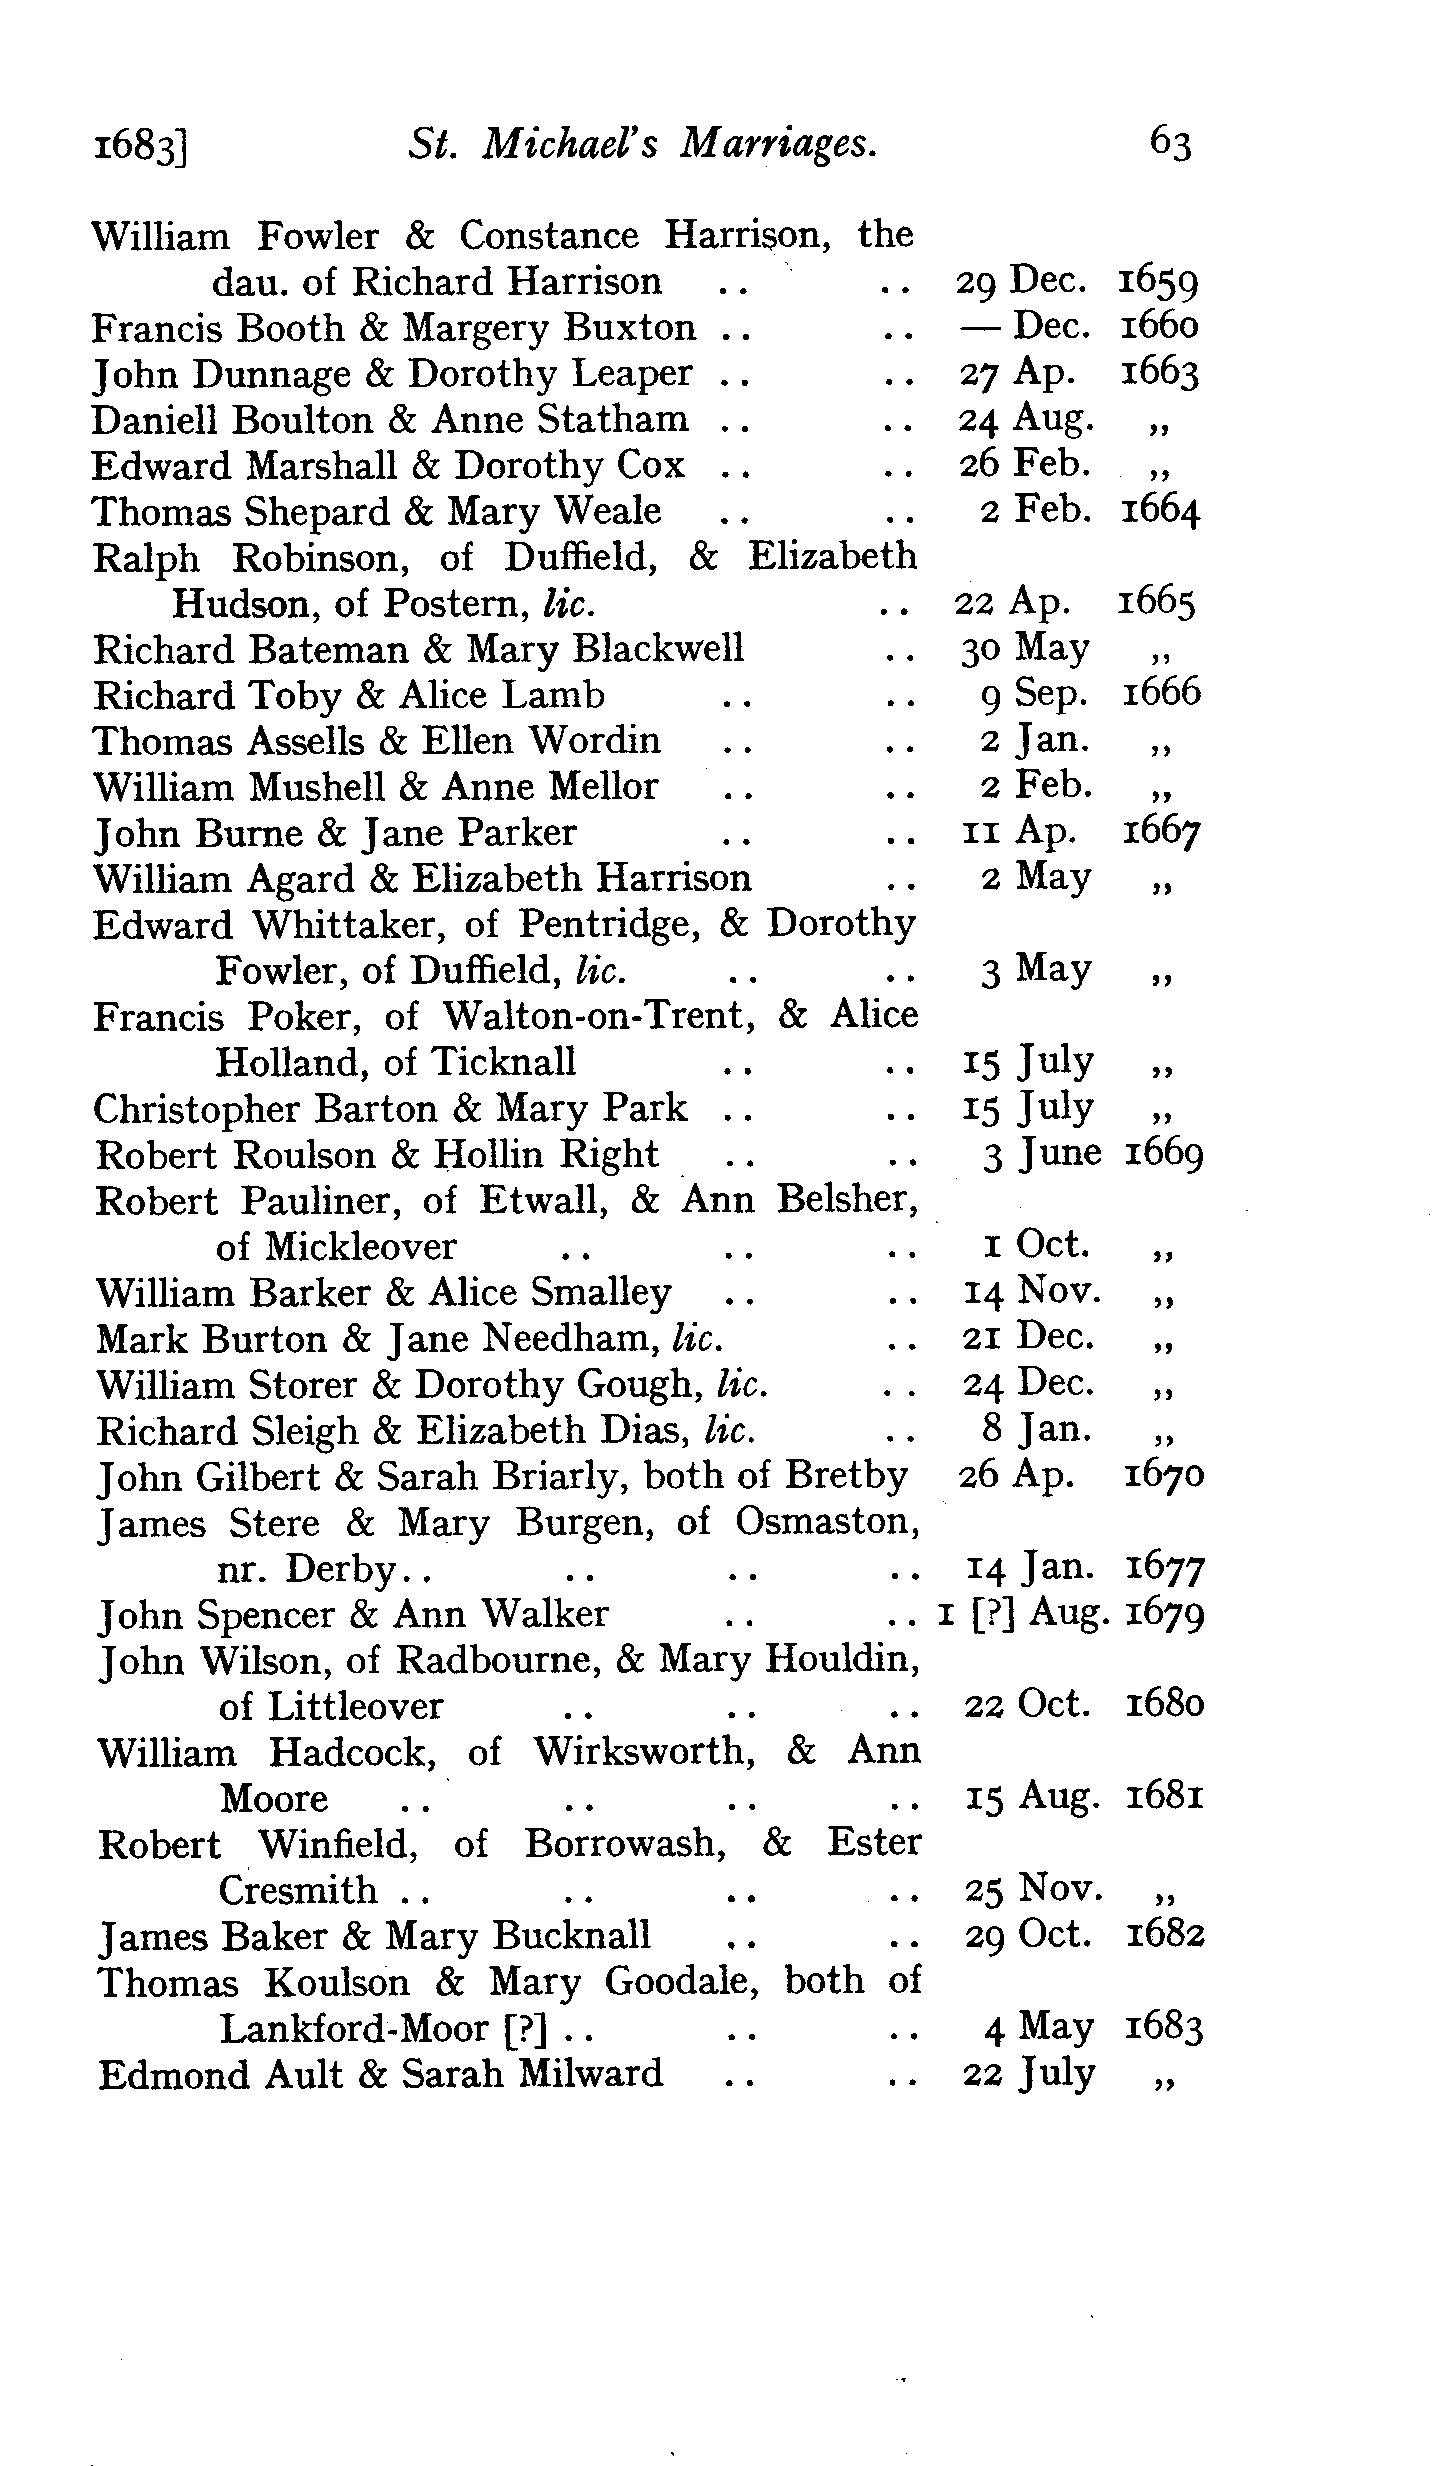 Derbyshire Parish Registers - Marriages volume 5 page 63 - click to open larger version in a new window